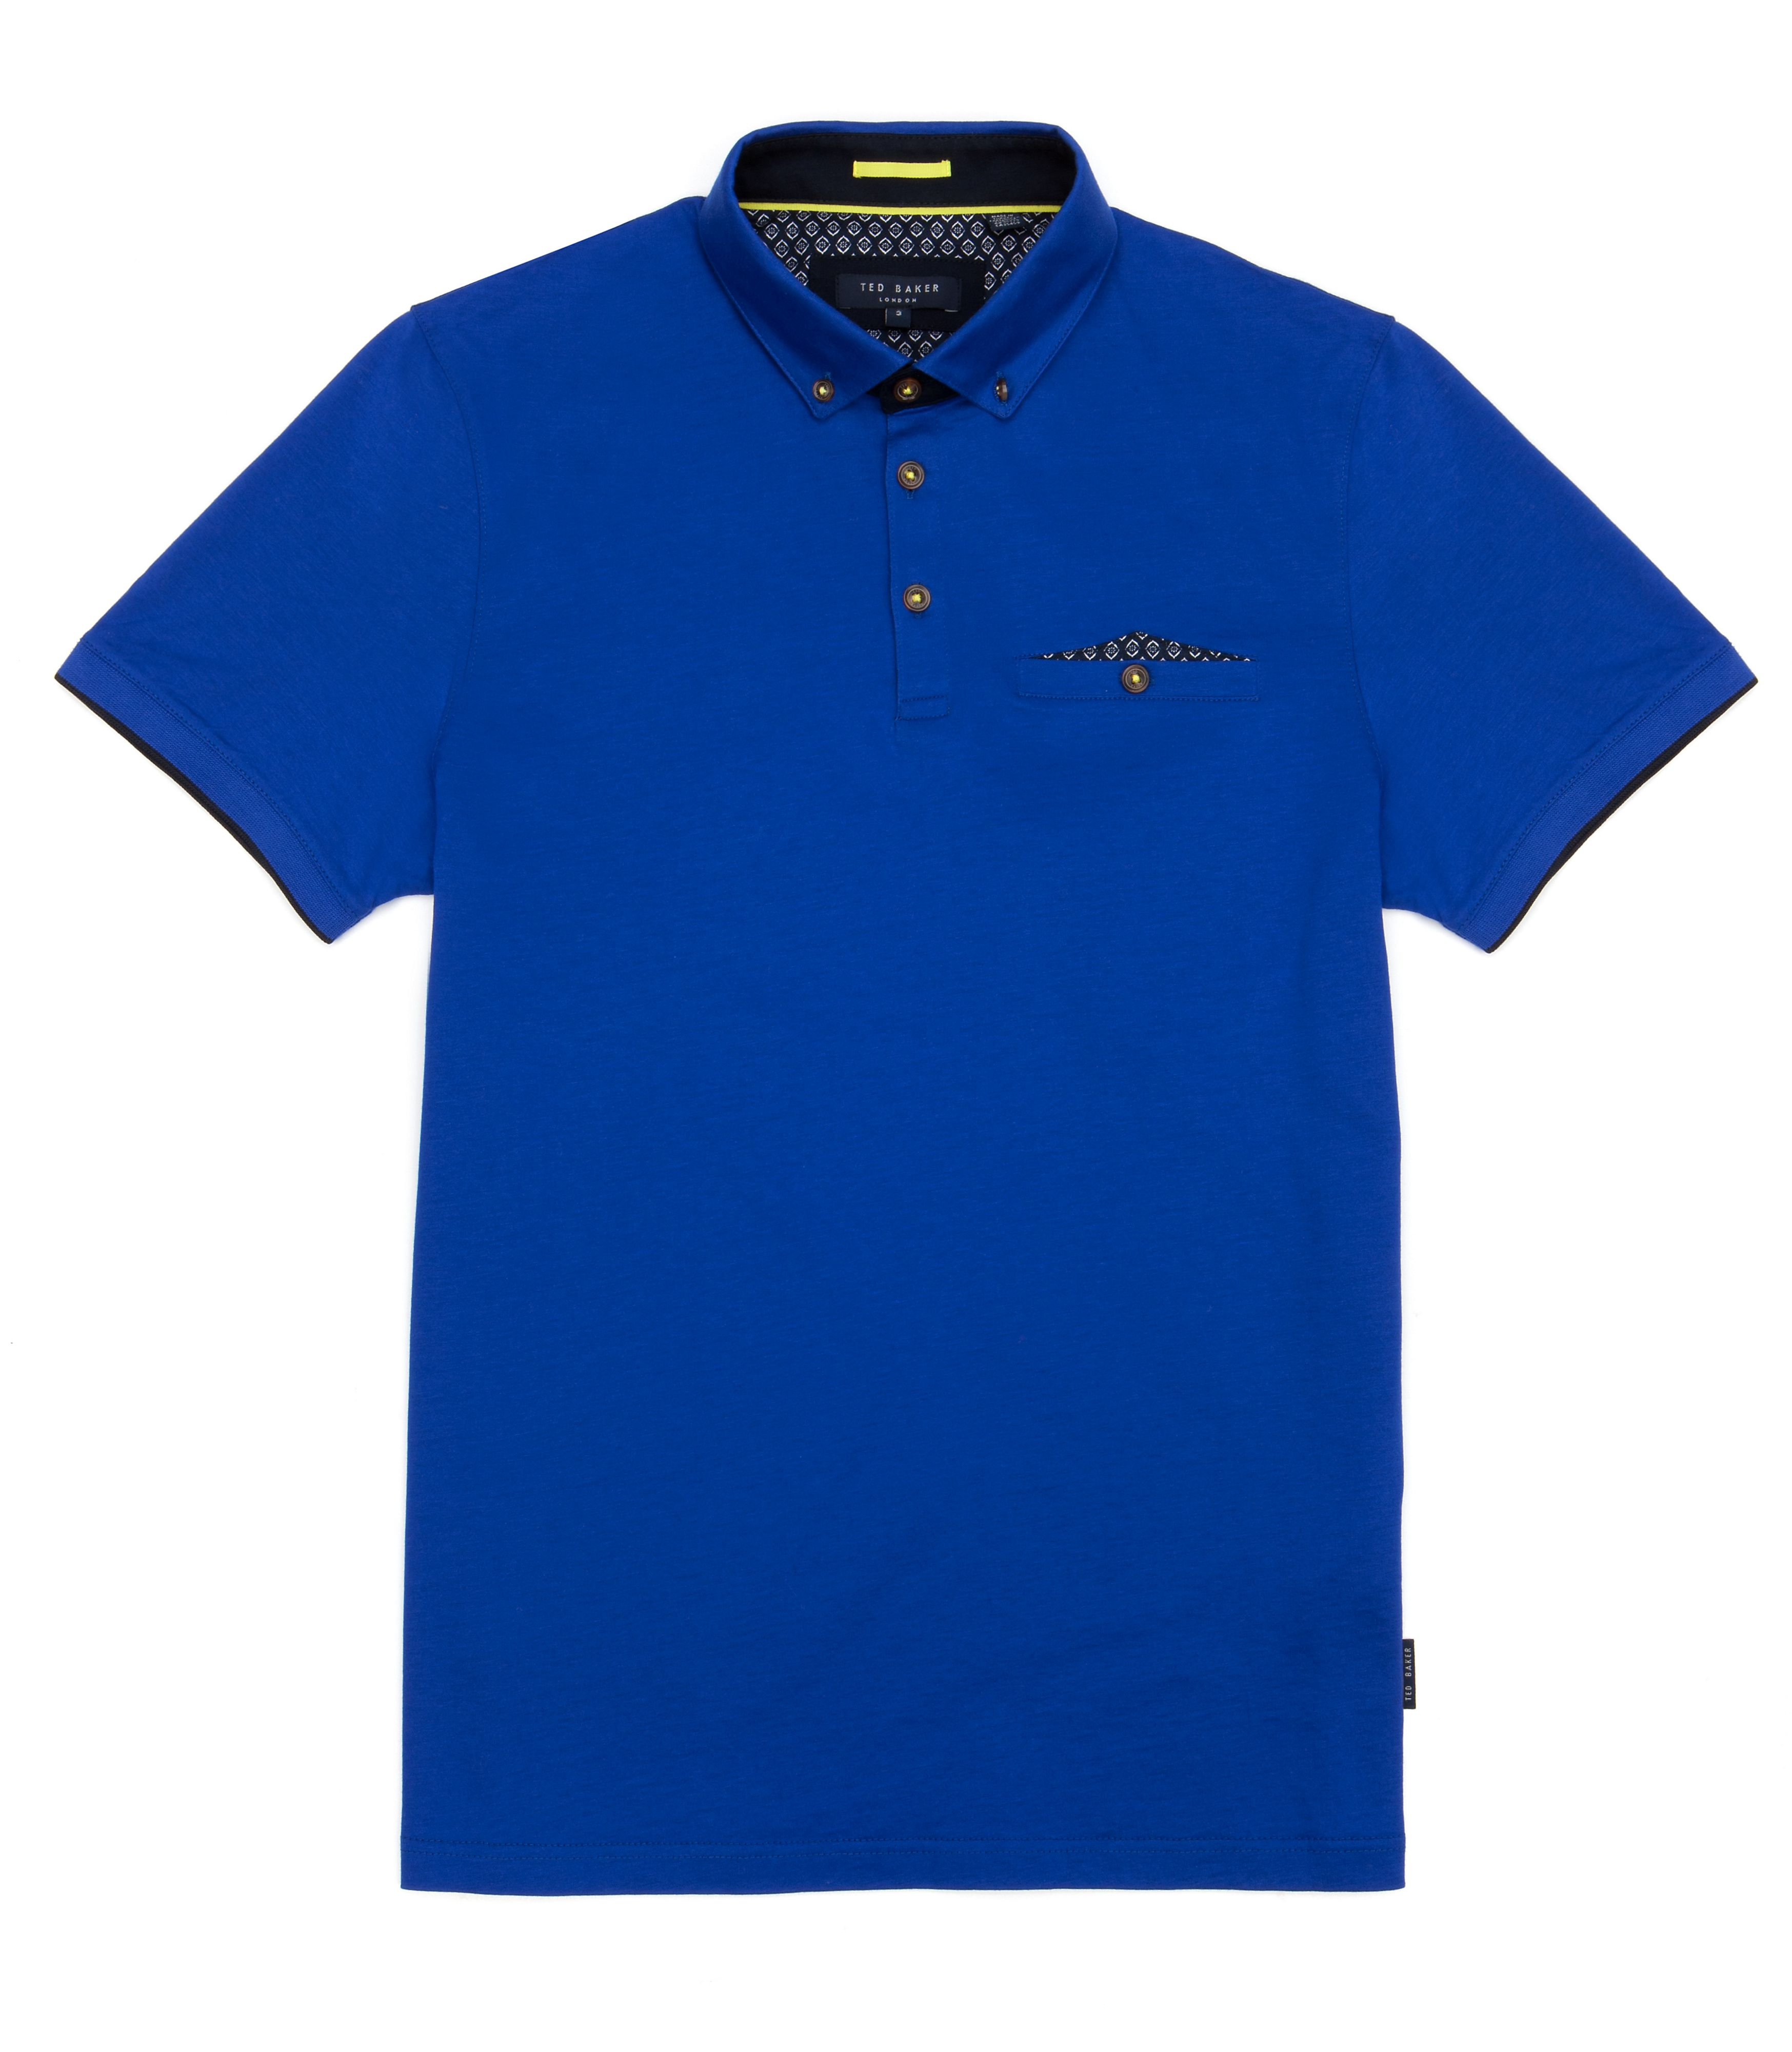 Skybar jersey polo top